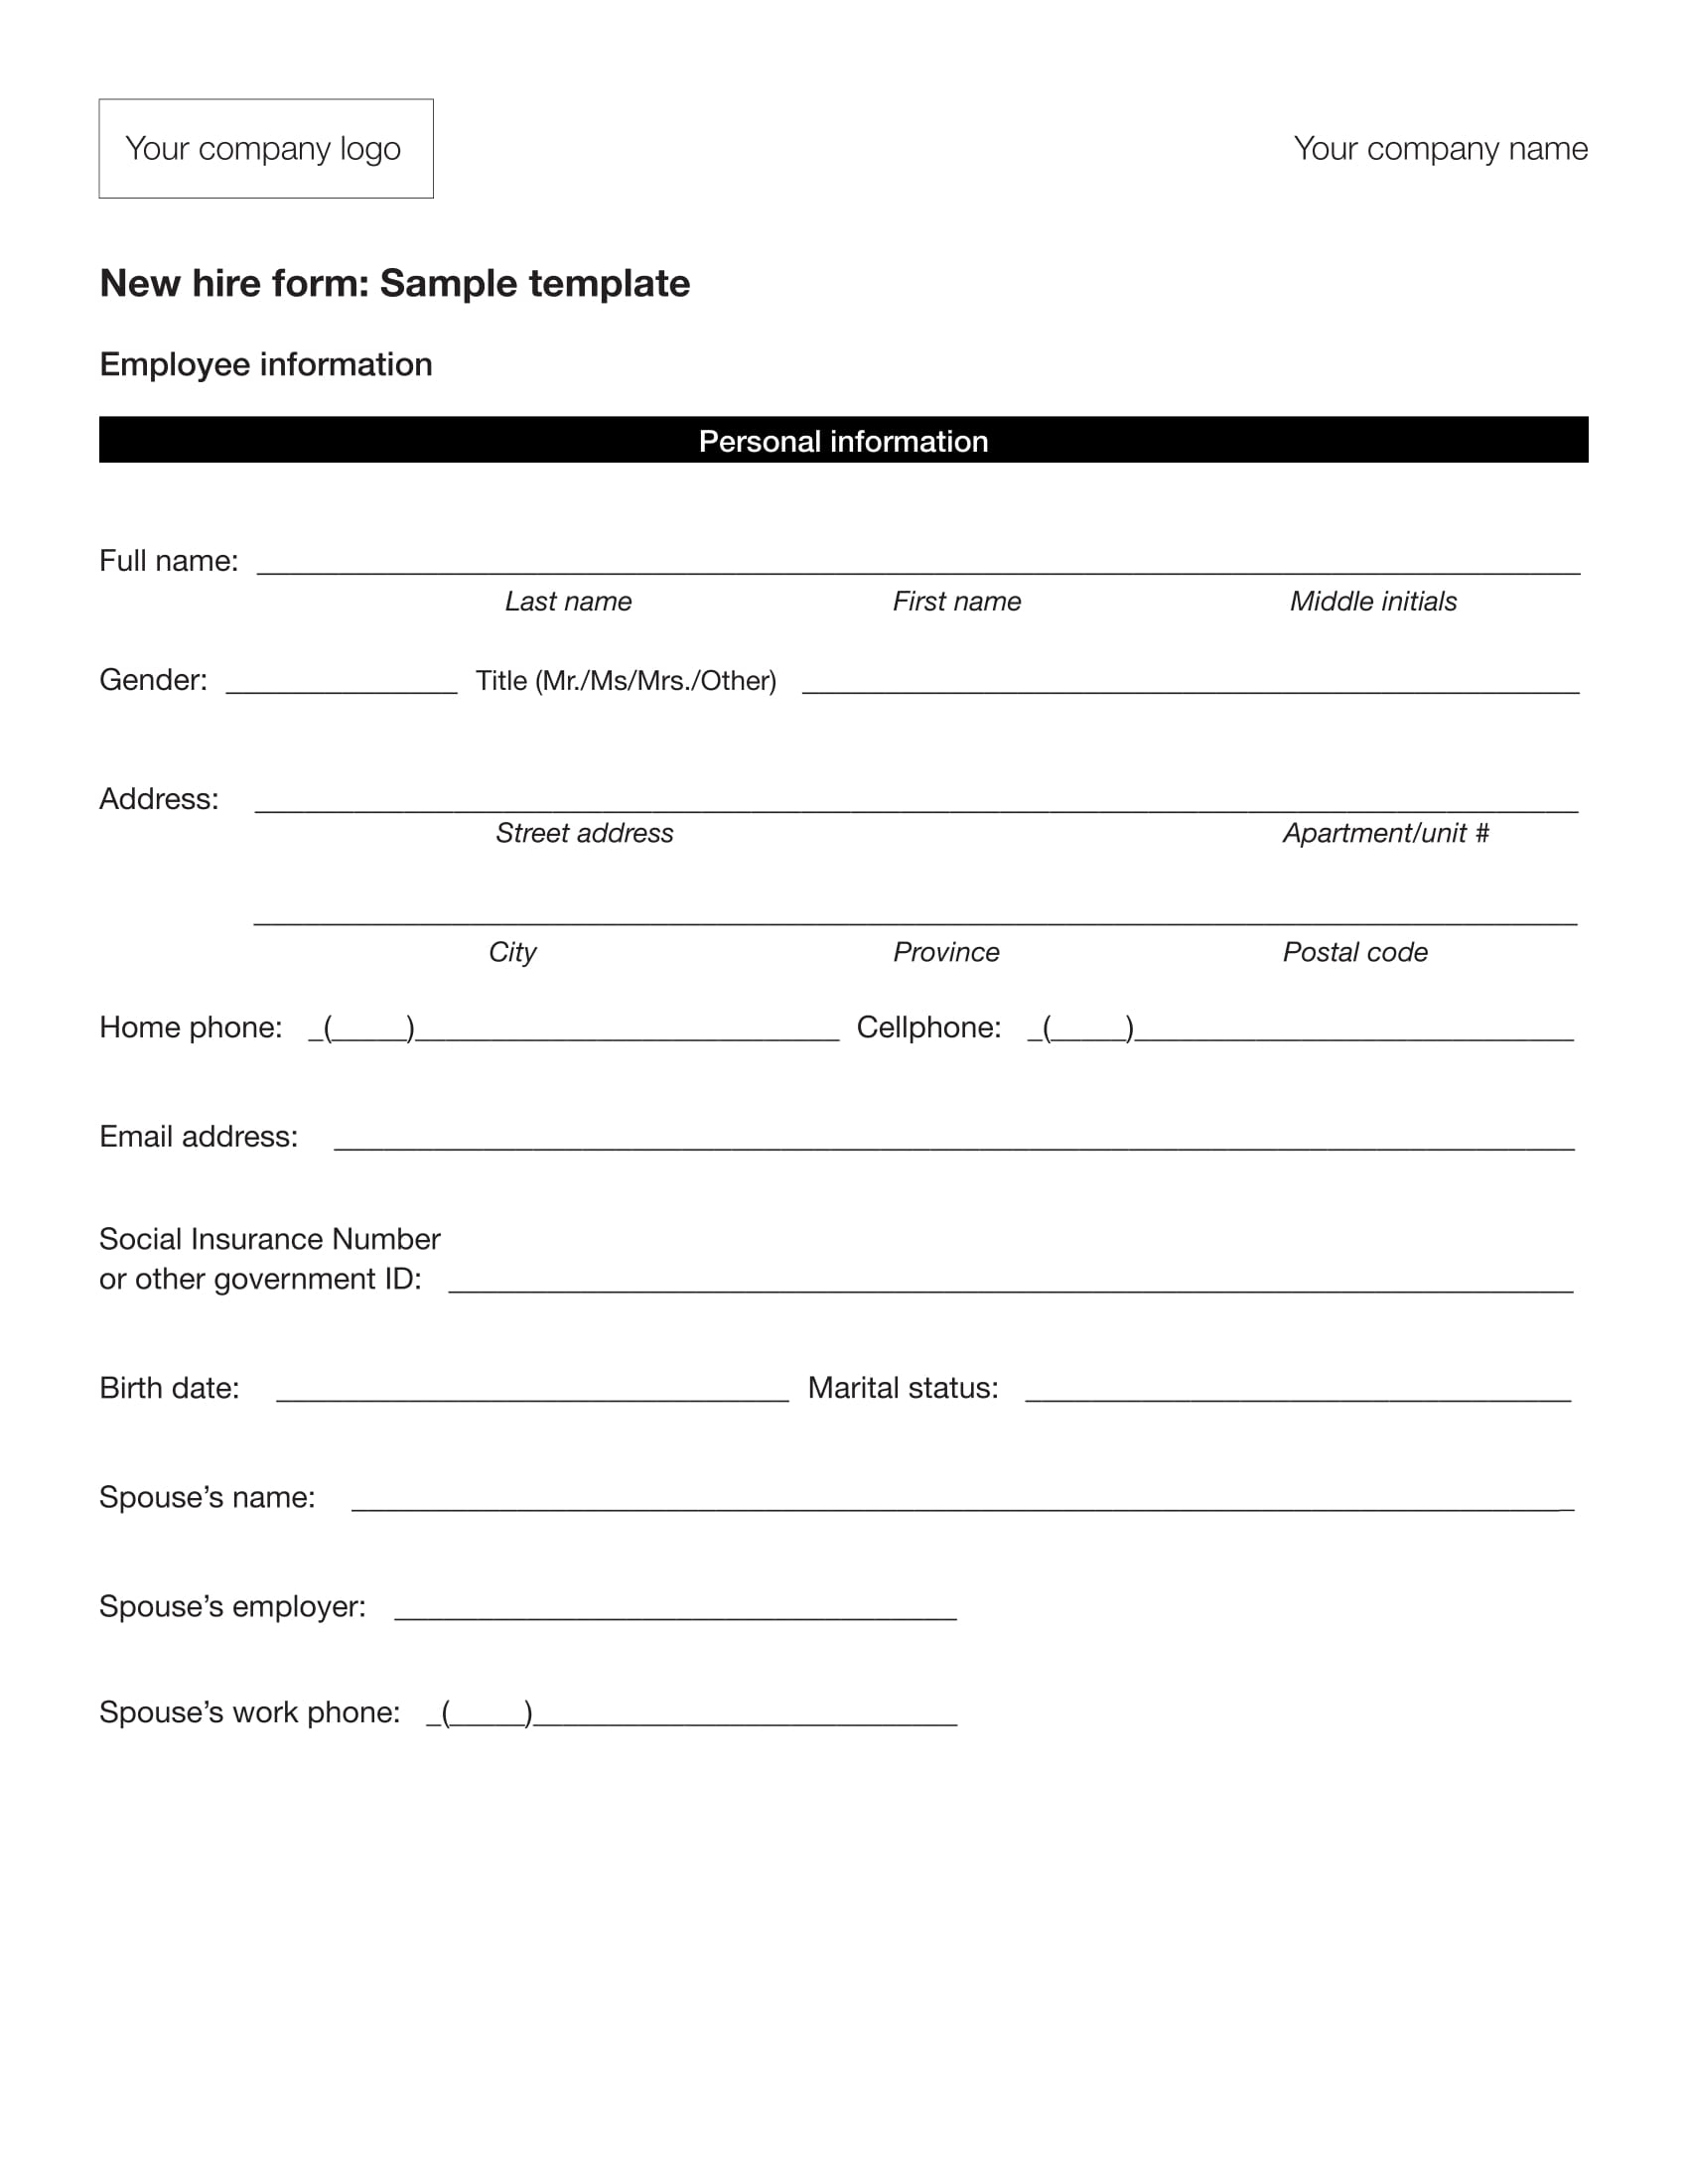 new hire employee information form sample 1